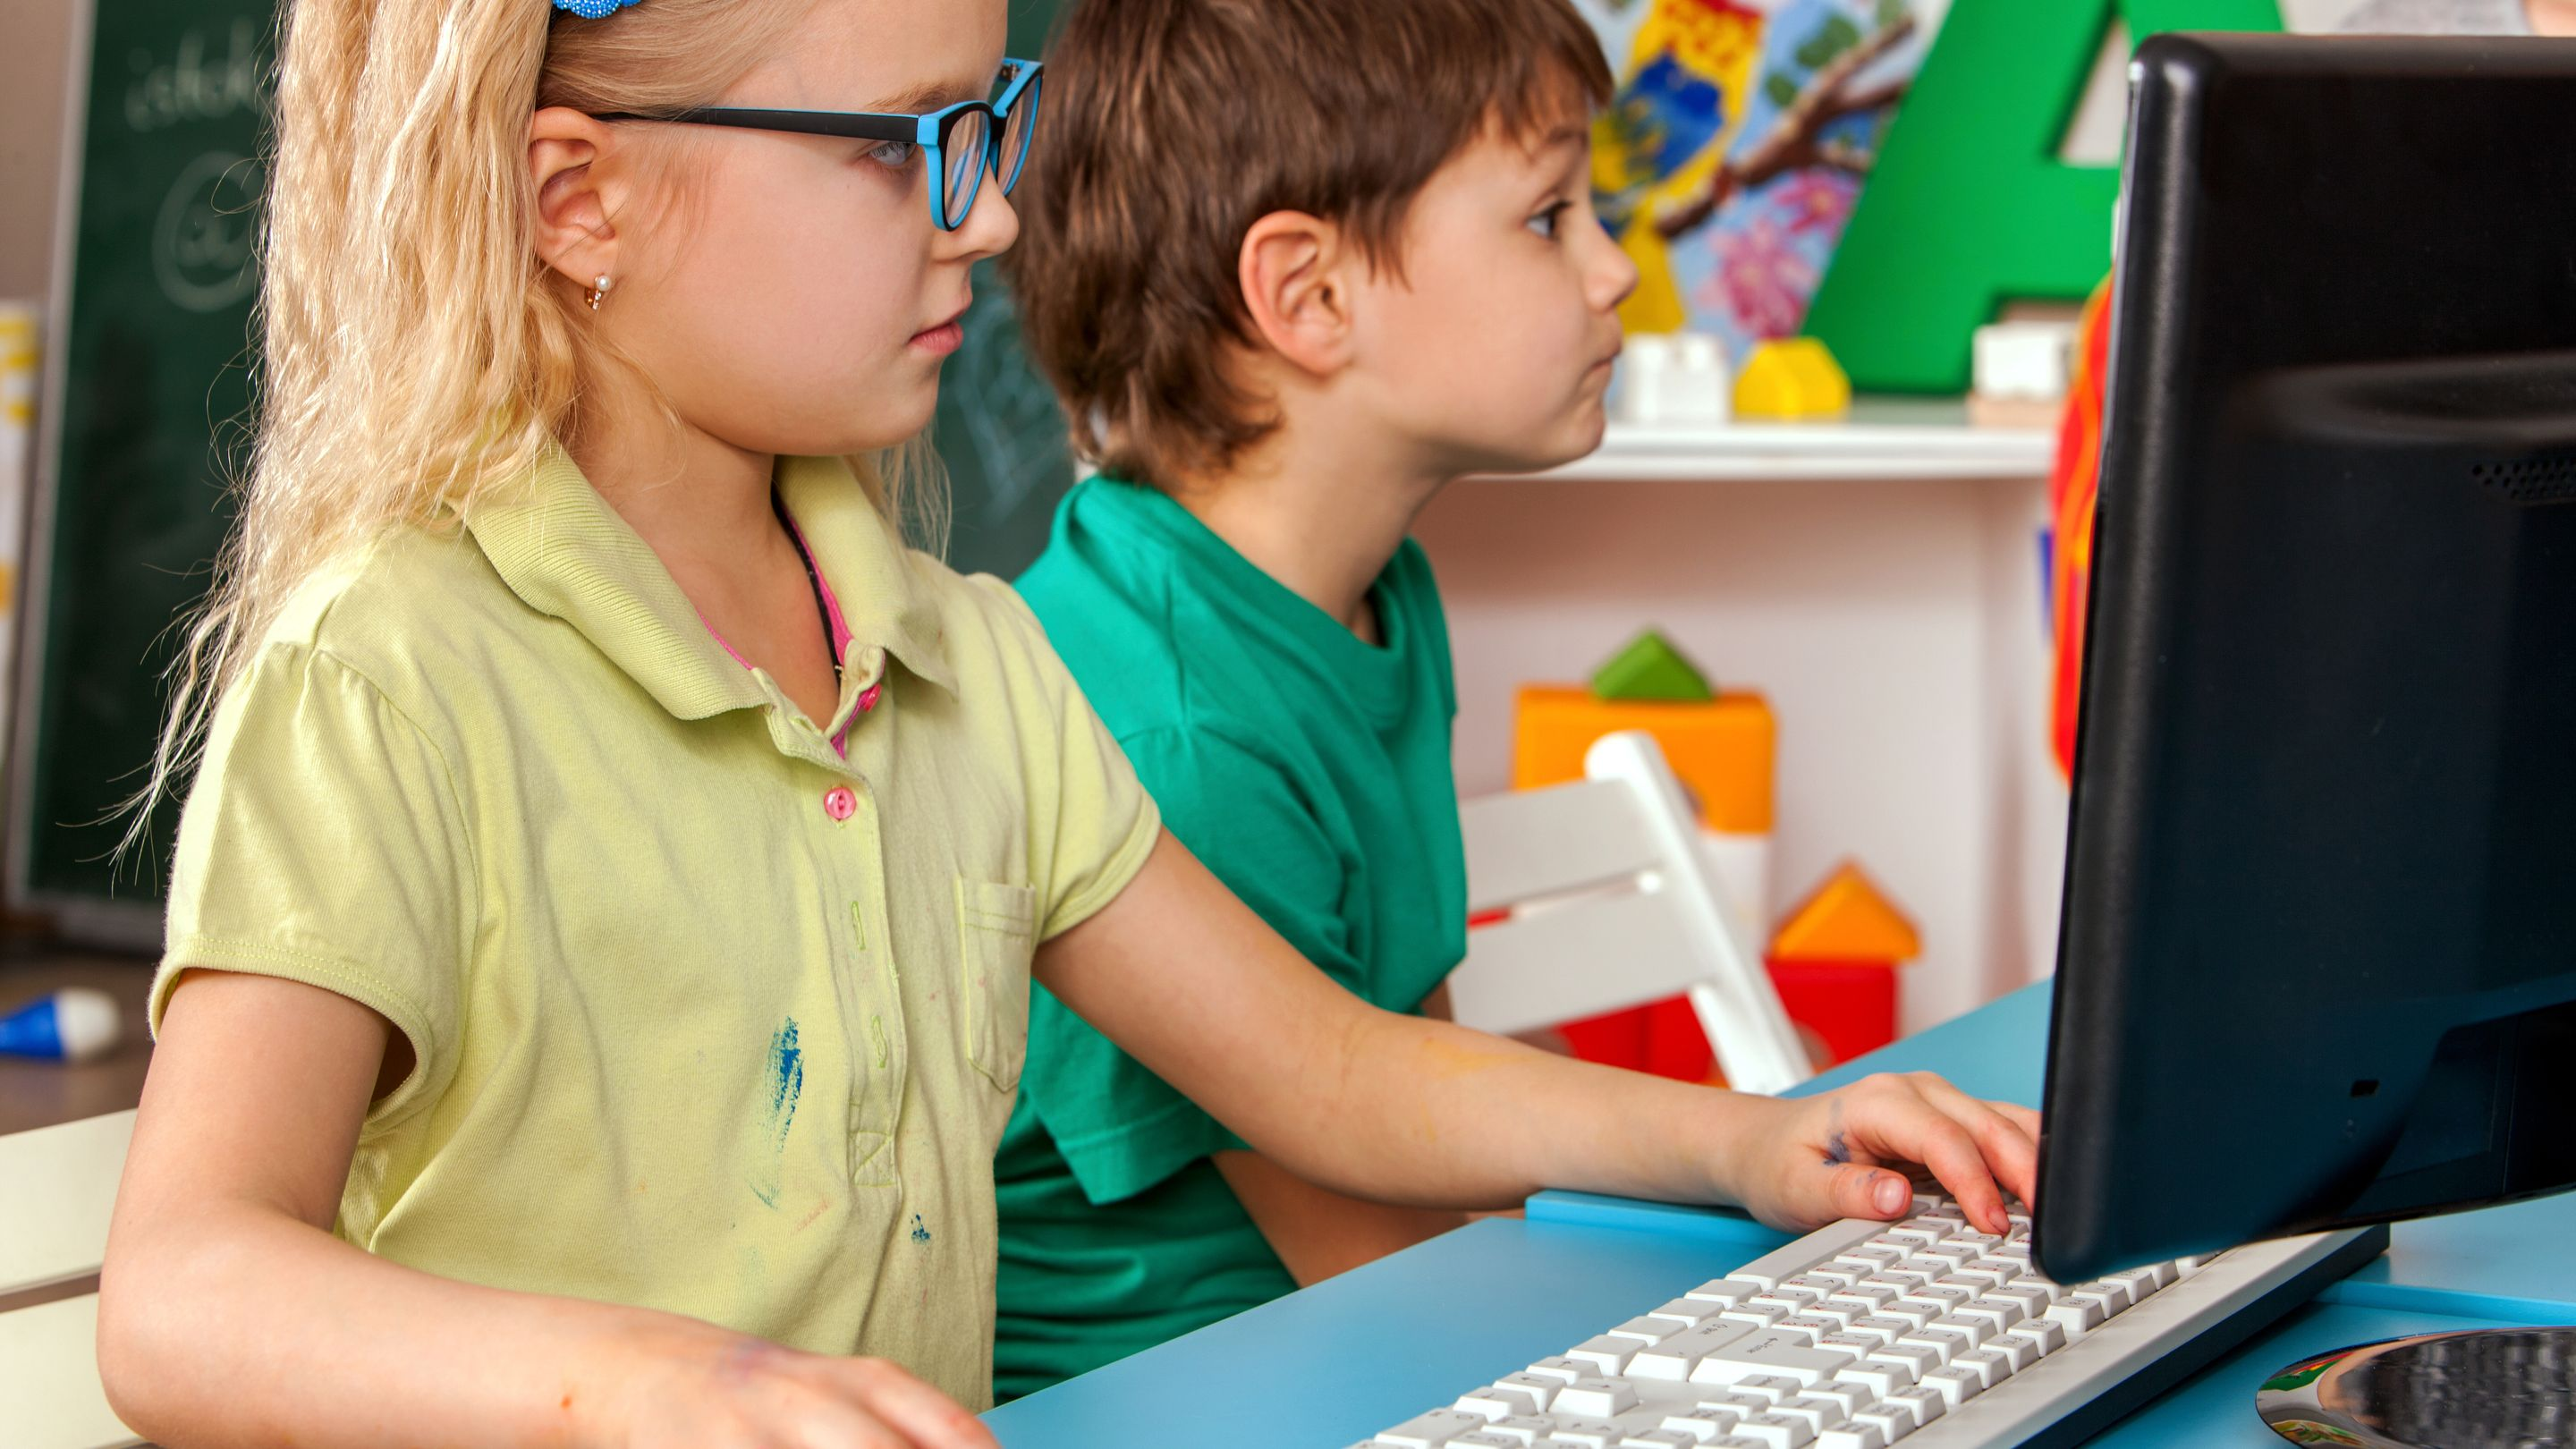 Teaching Empathy With Video Games | Edutopia